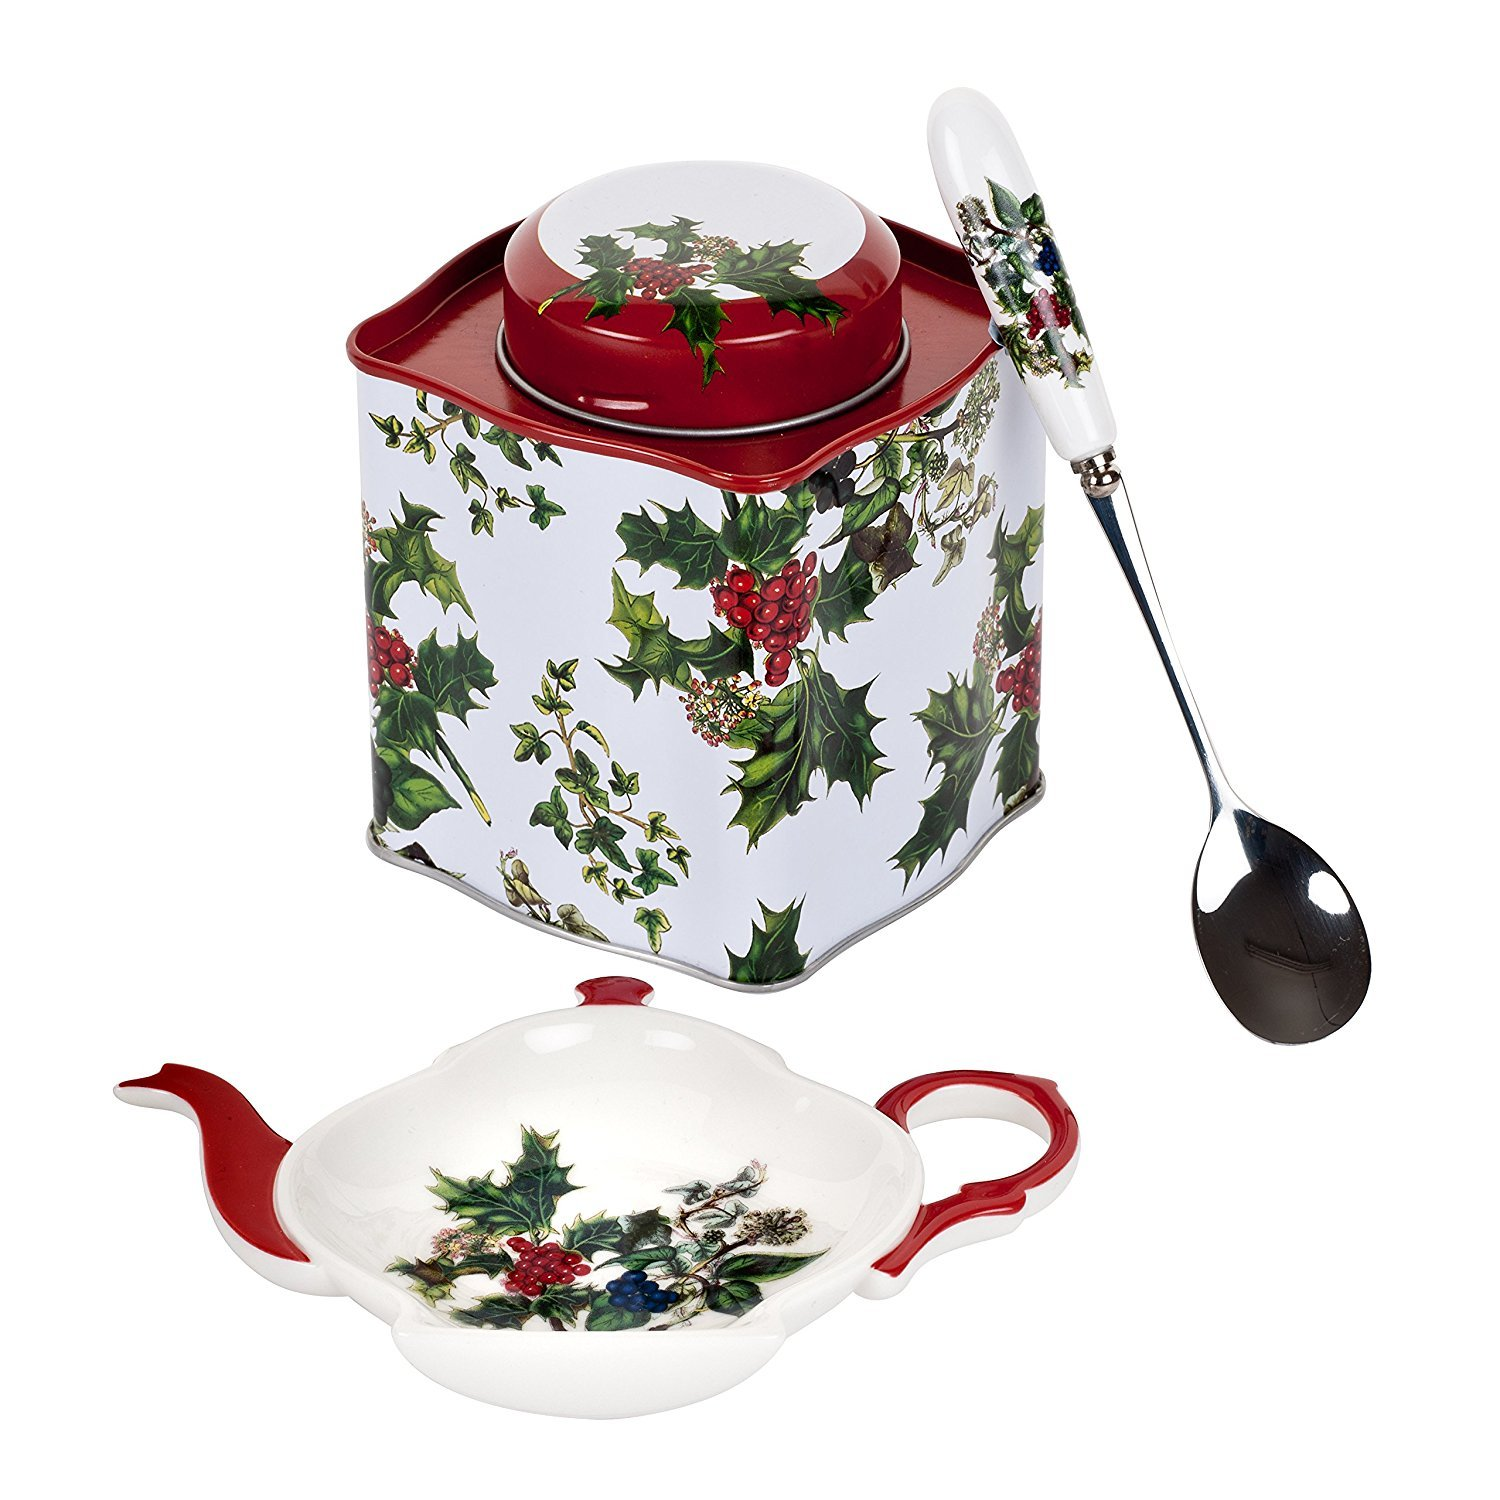 Pimpernel Holly & The Ivy 3-pc Tea Set (Spoon Rest, Spoon & Tin Caddy) by Pimpernel